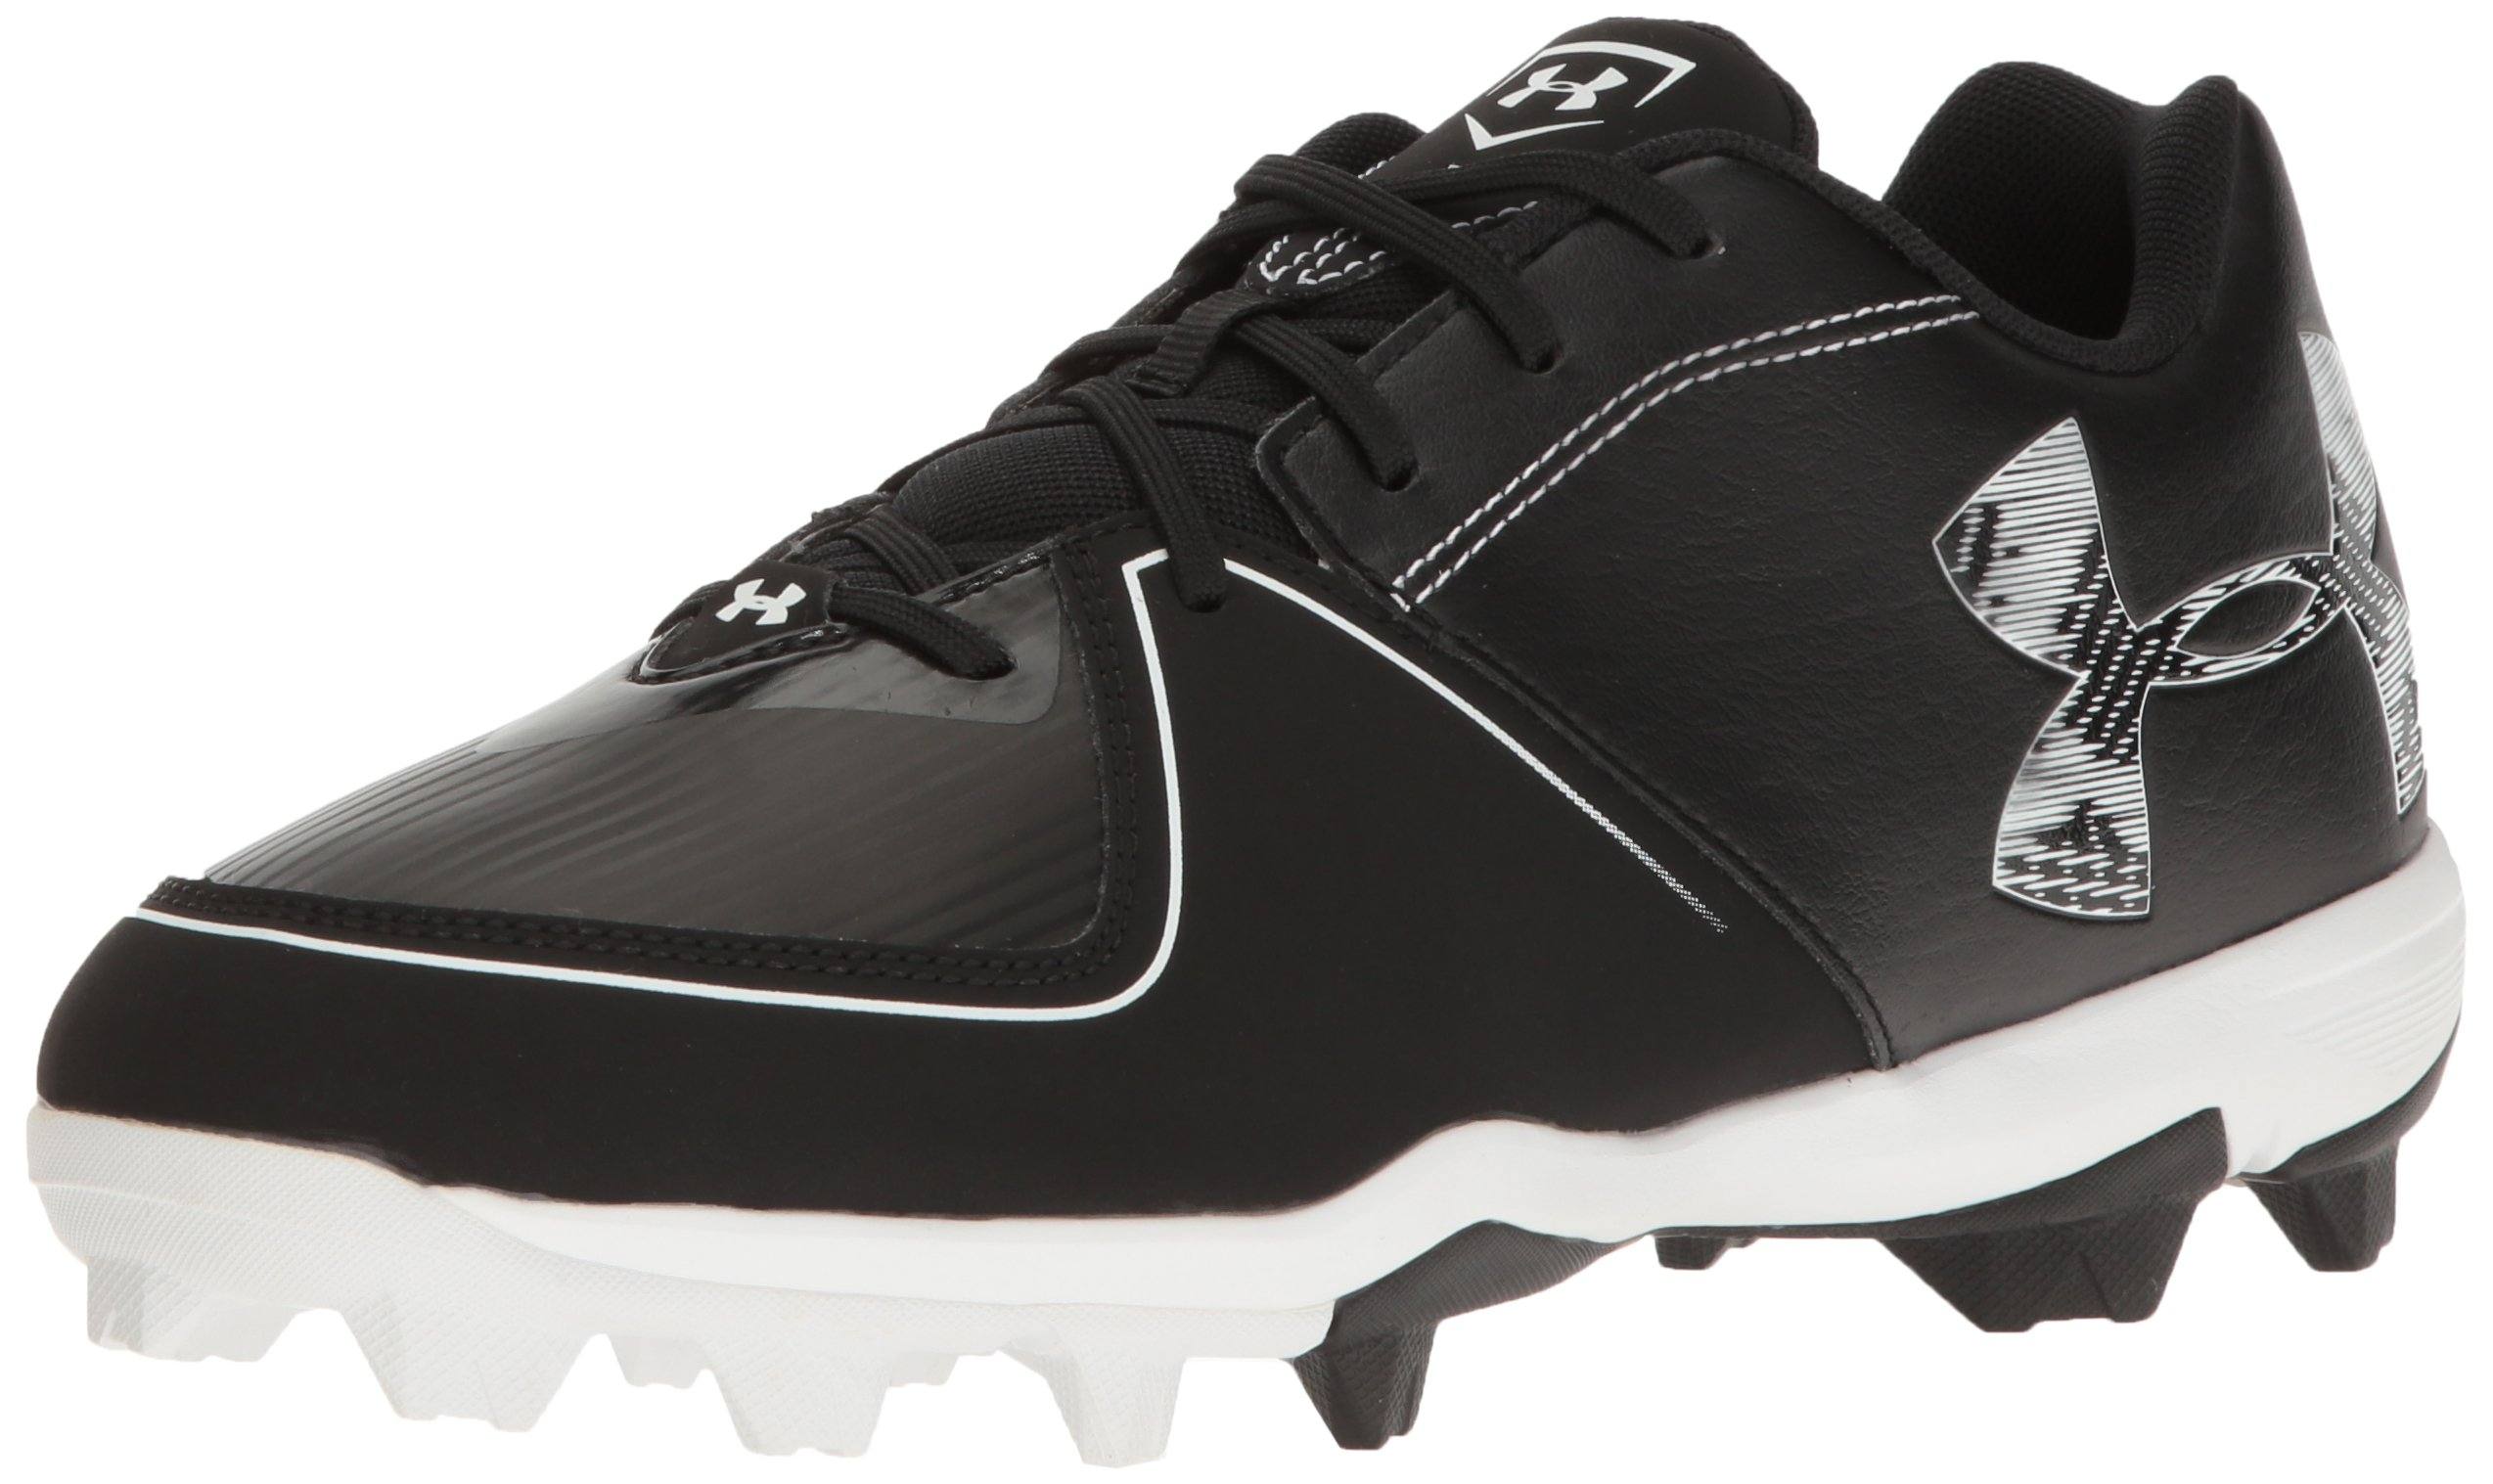 52483cae774d See all customer reviews · Under Armour Women's Glyde RM Softball Shoe  product image